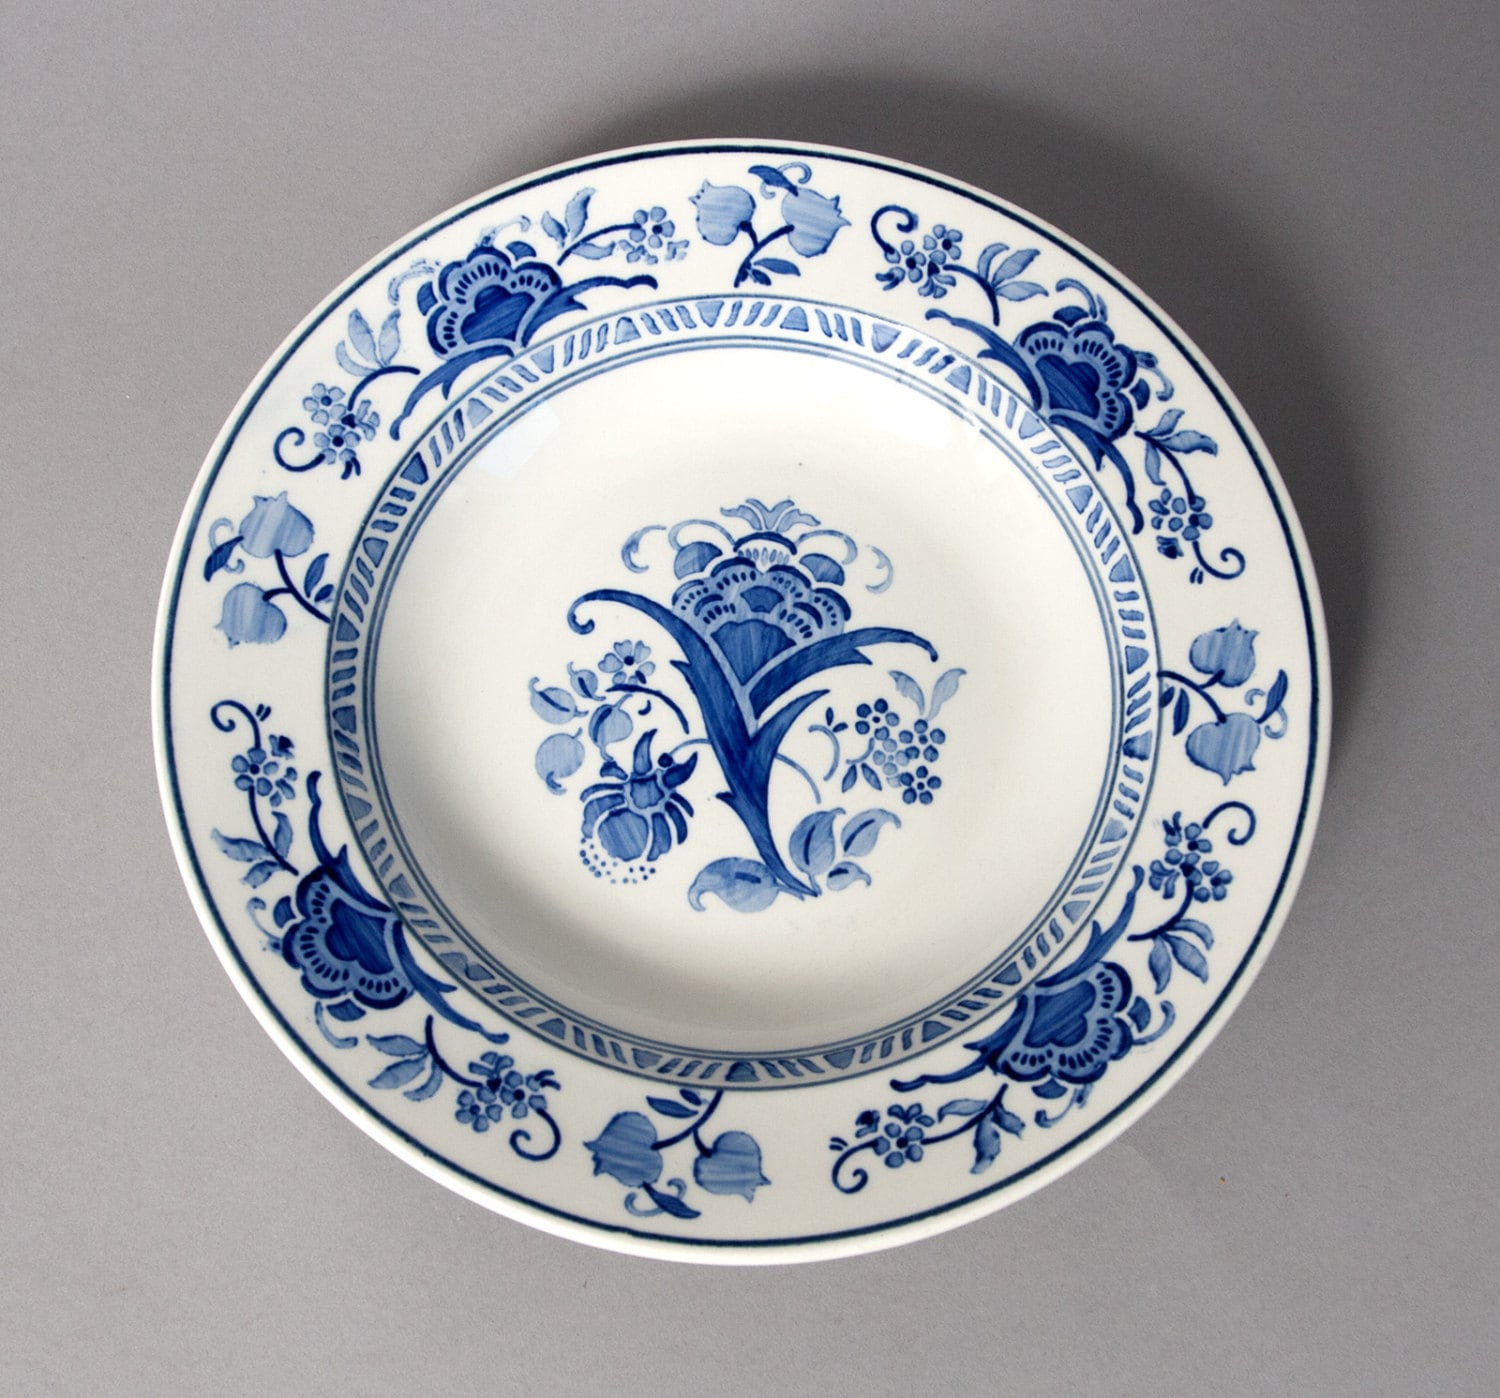 Plate villeroy boch blue white porcelain germany china for Villeroy and boch plates